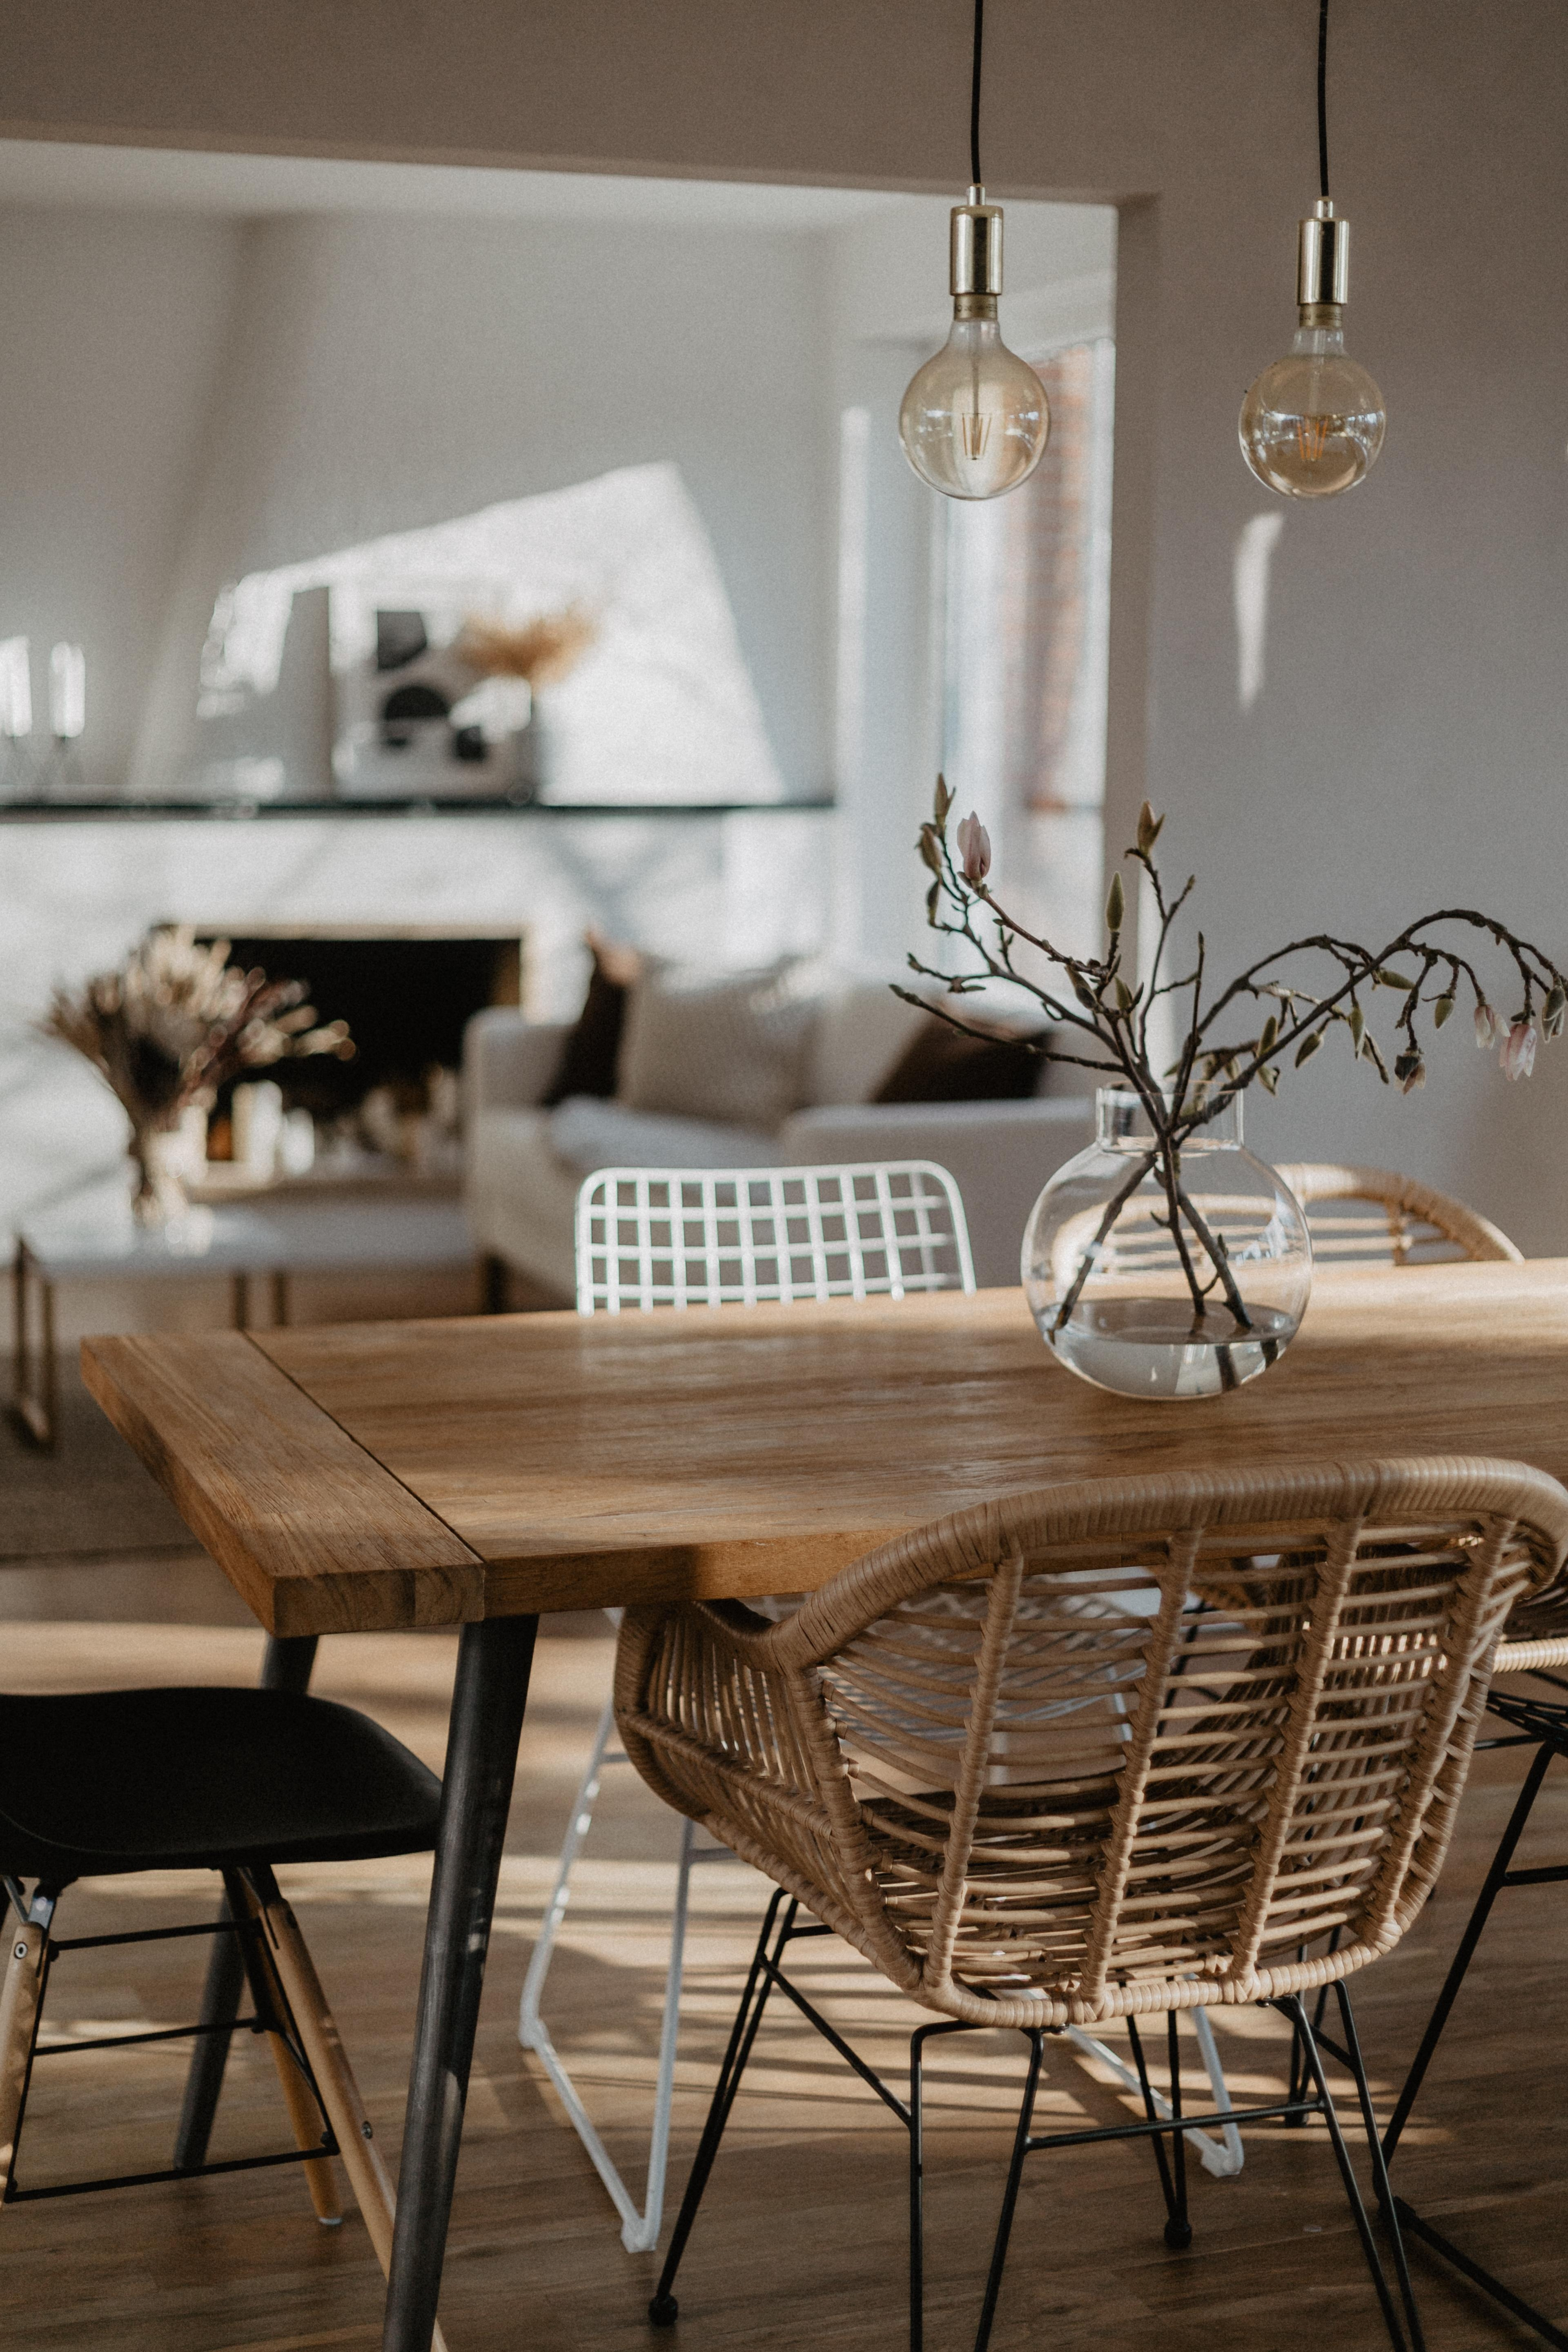 Living interior wohnzimmer hygge hyggelig sonne magnolie  96901832 f2f8 4bc3 831b 6676e875ed90